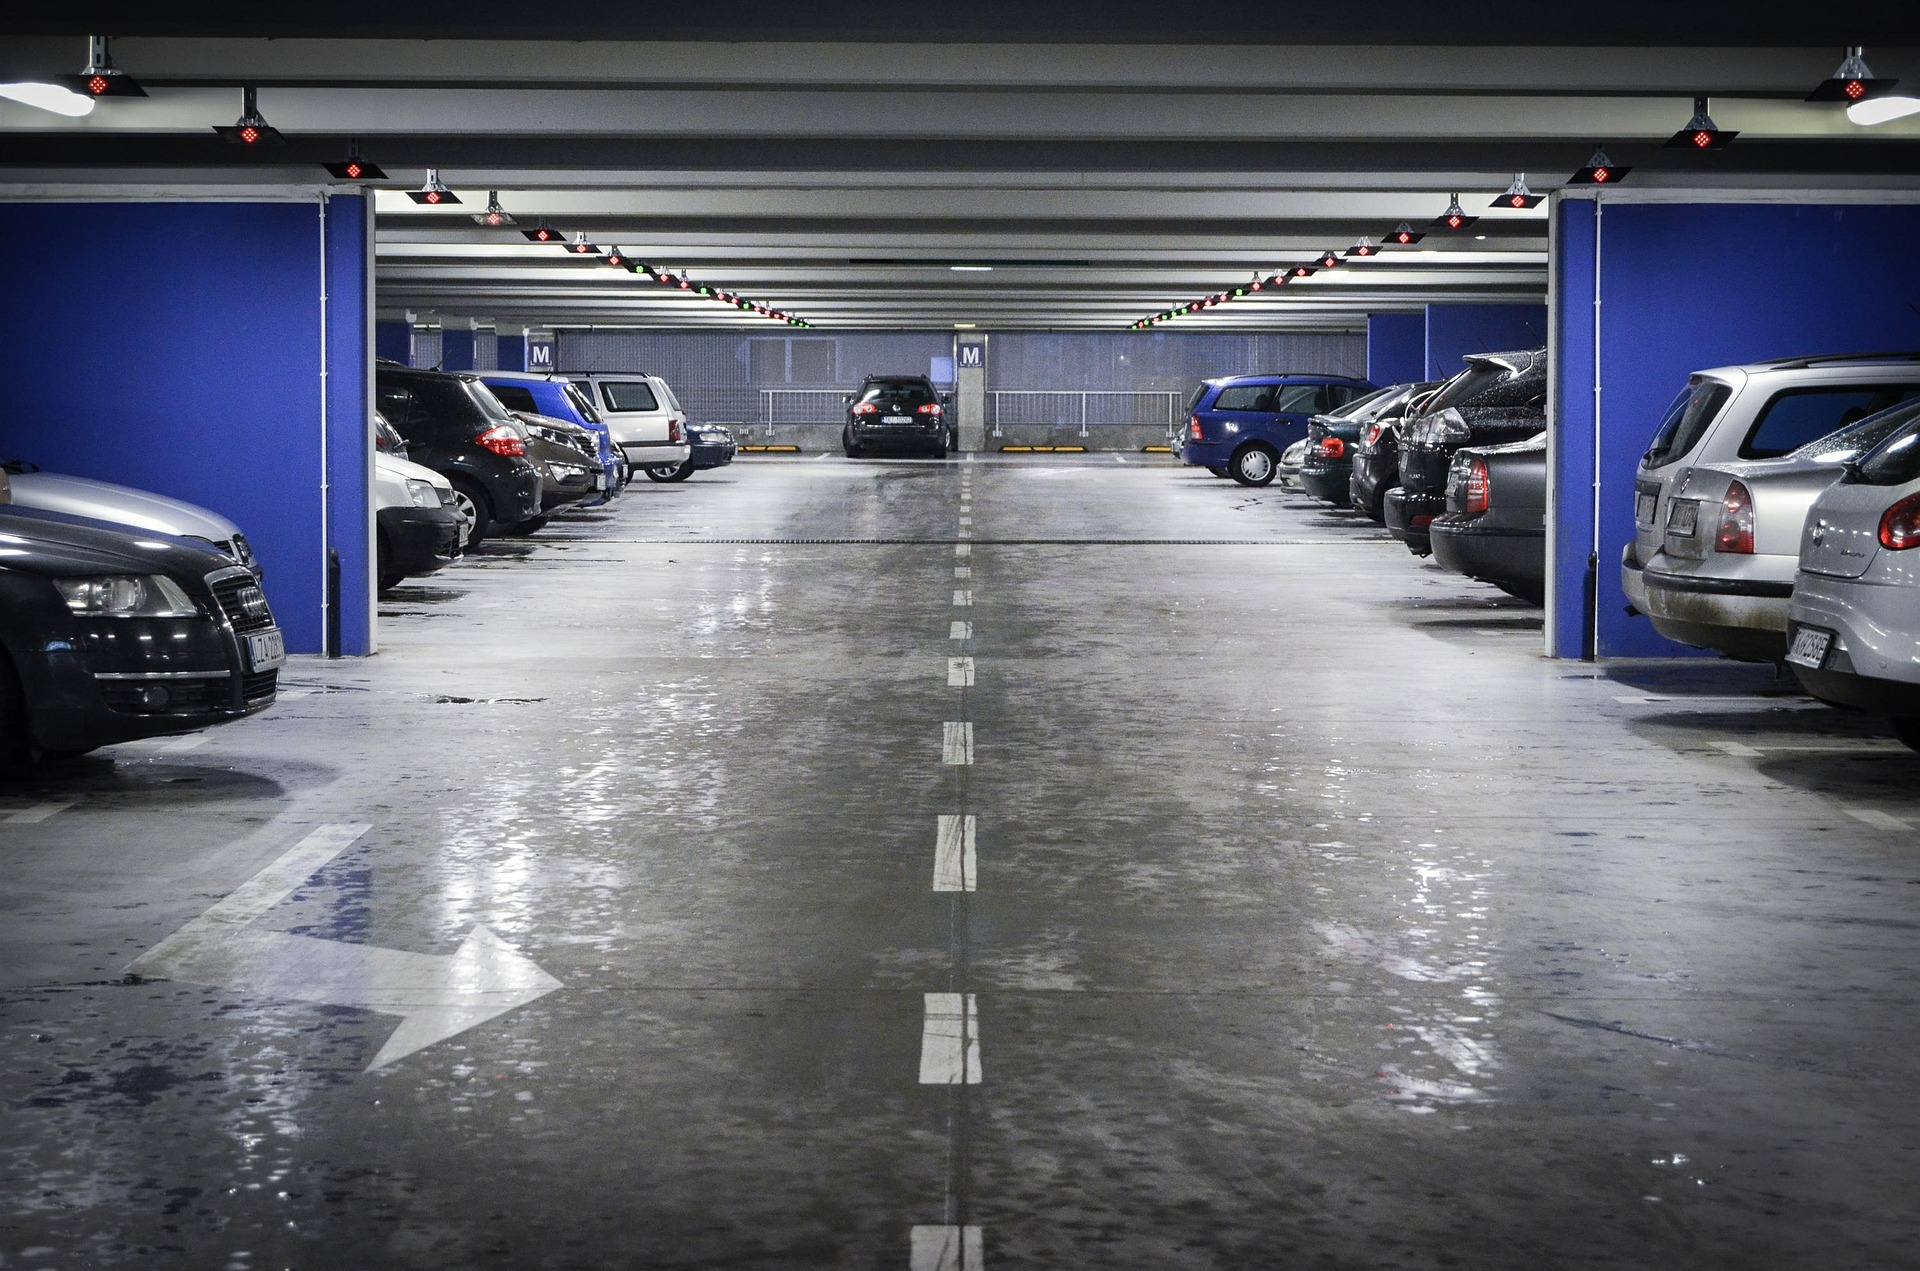 parking-solution-hesion-park-smartparking